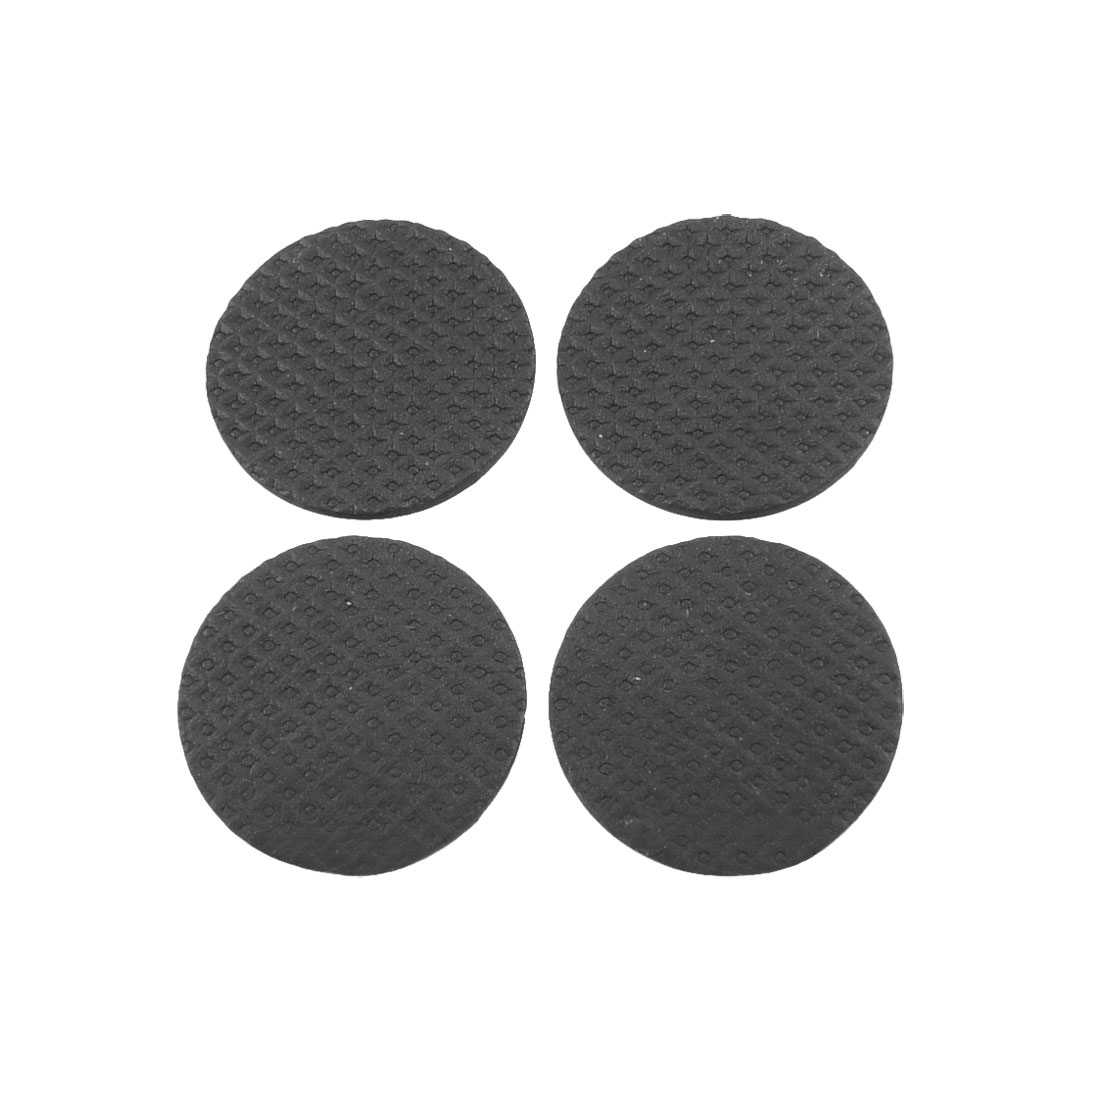 4 Pcs Tables Chairs Furniture Protection Round Pad